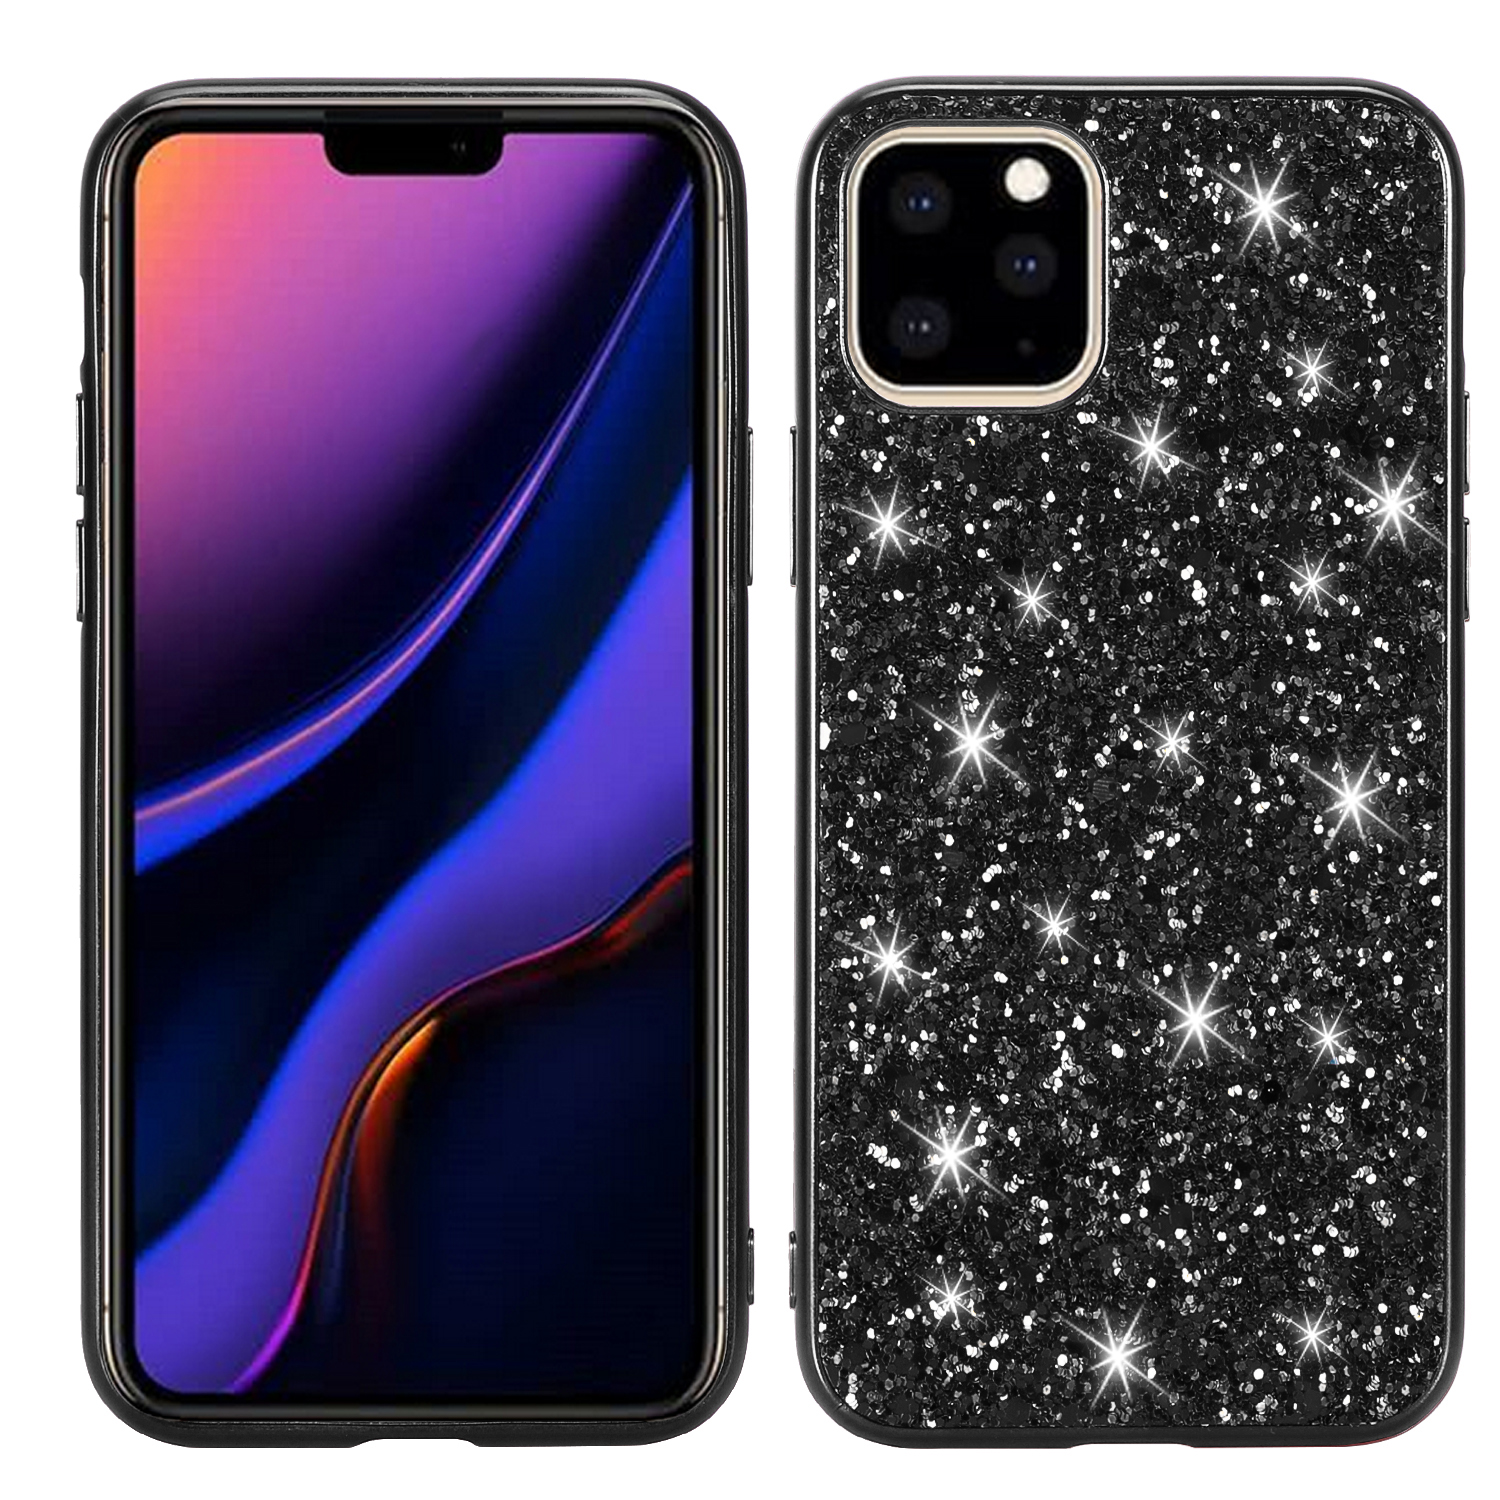 Shiny Glitter Girls Case for iPhone 11/11 Pro/11 Pro Max 9